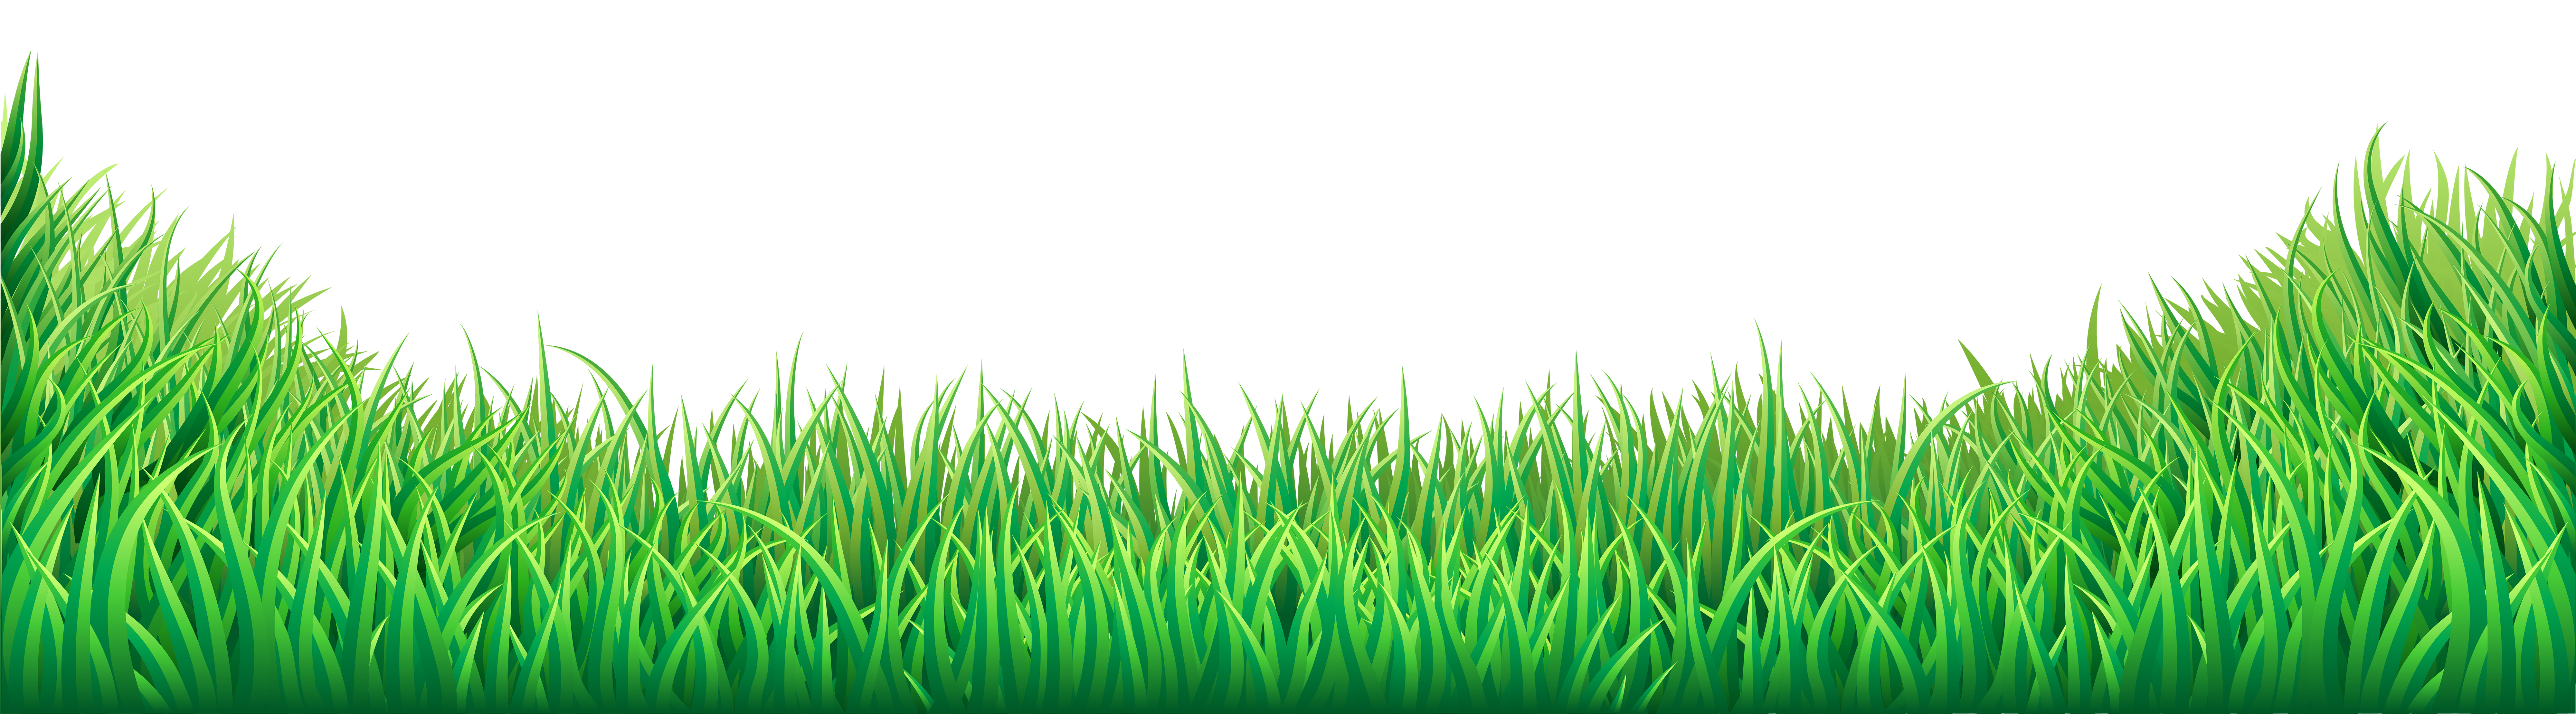 Grass Png Transparent Clip Art Image Gallery Yopriceville - Grass, Transparent background PNG HD thumbnail